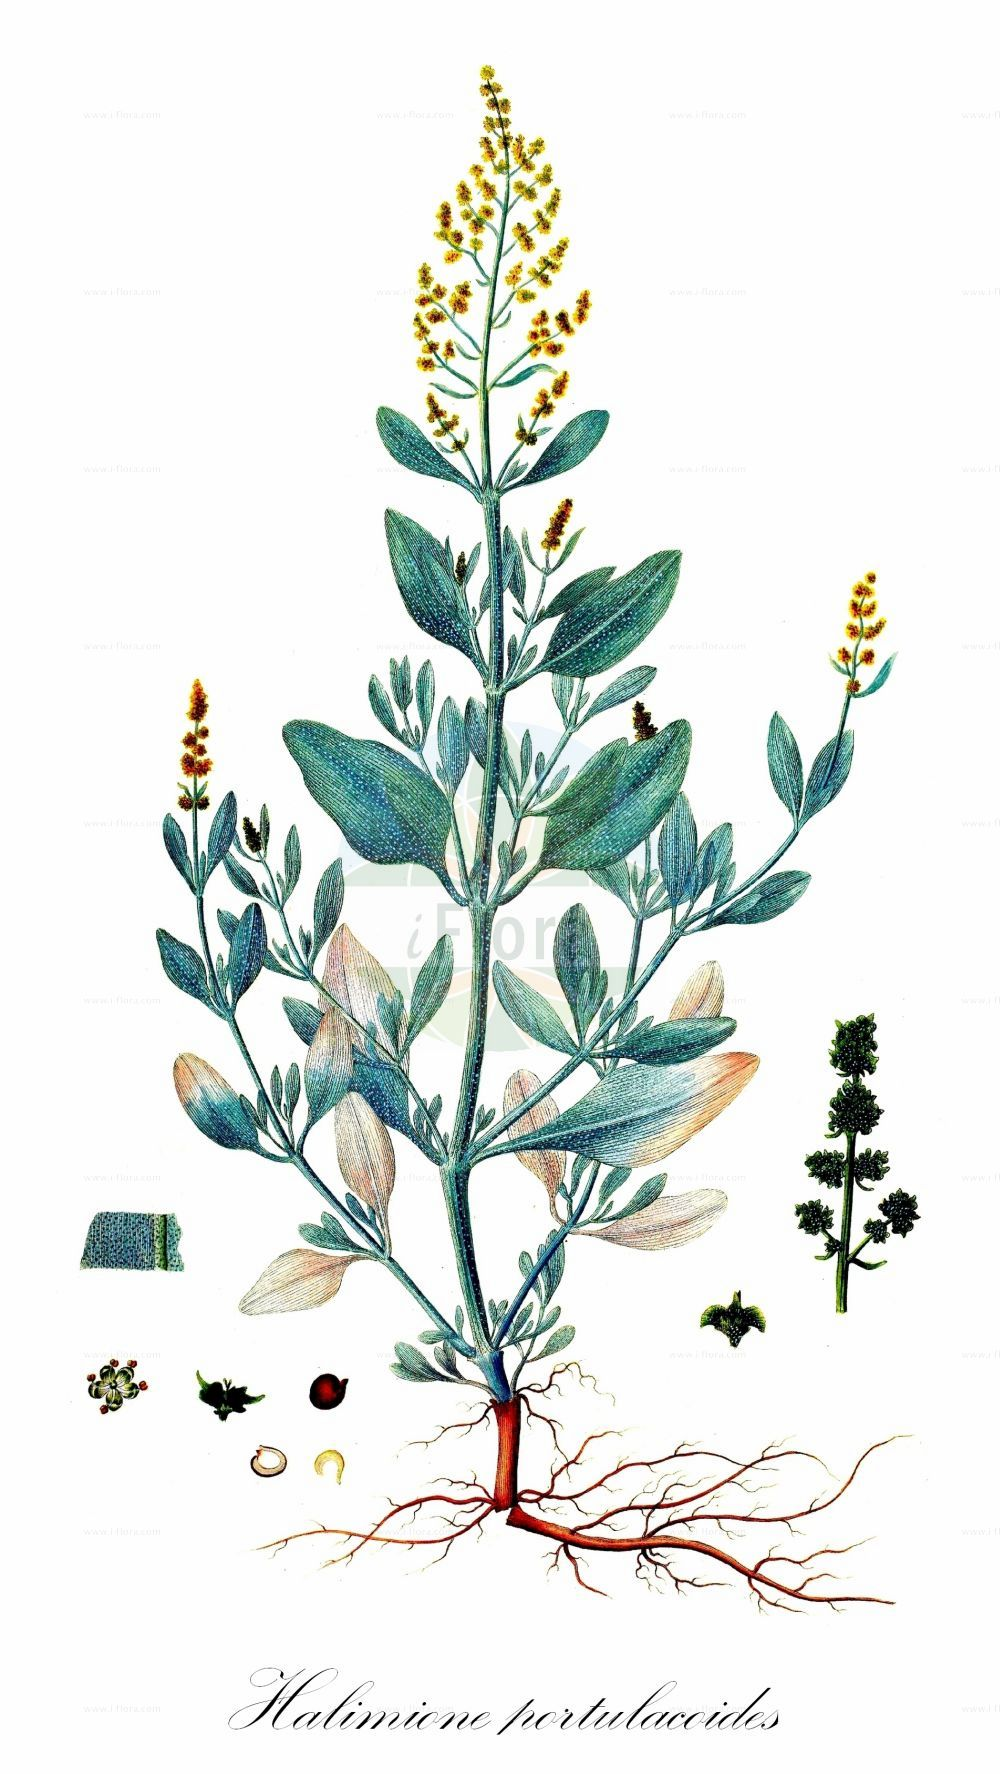 Historische Abbildung von Halimione portulacoides (Portulak-Keilmelde - Sea-purslane). Das Bild zeigt Blatt, Bluete, Frucht und Same. ---- Historical Drawing of Halimione portulacoides (Portulak-Keilmelde - Sea-purslane).The image is showing leaf, flower, fruit and seed.(Halimione portulacoides,Portulak-Keilmelde,Sea-purslane,Atriplex portulacoides,Obione portulacoides,Halimione,Keilmelde,Amaranthaceae,Fuchsschwanzgewaechse,Pigweed family,Blatt,Bluete,Frucht,Same,leaf,flower,fruit,seed,Oeder (1761-1883))